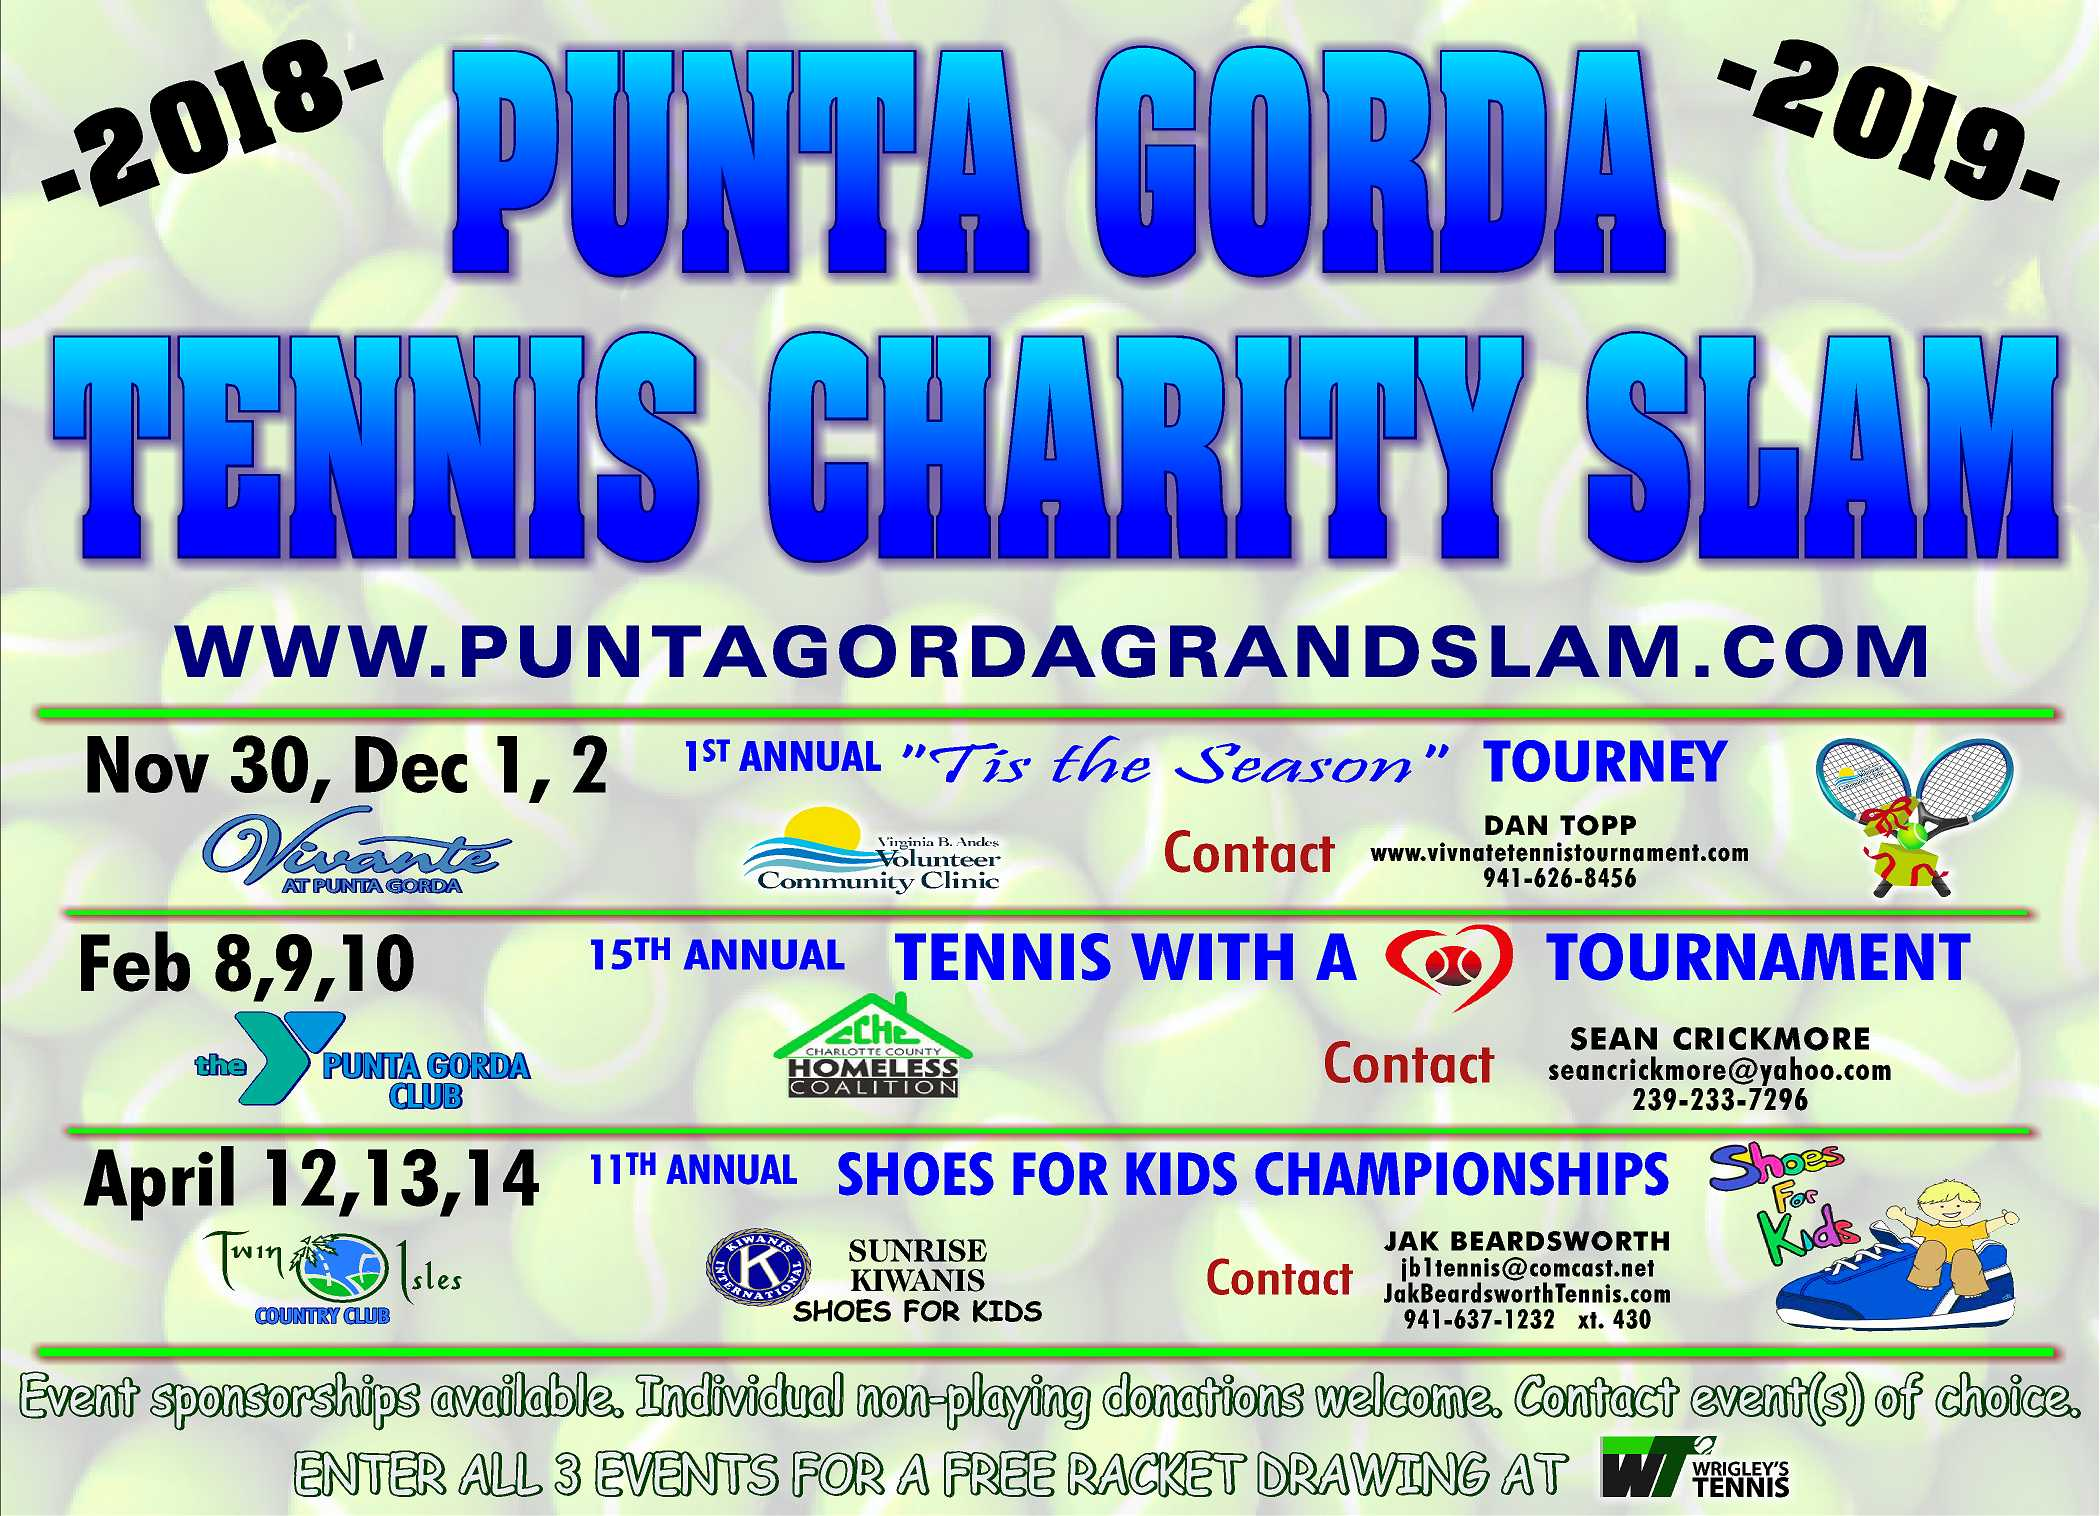 2018 / 2019 Punta Gorda Tennis Charity Grand Slam